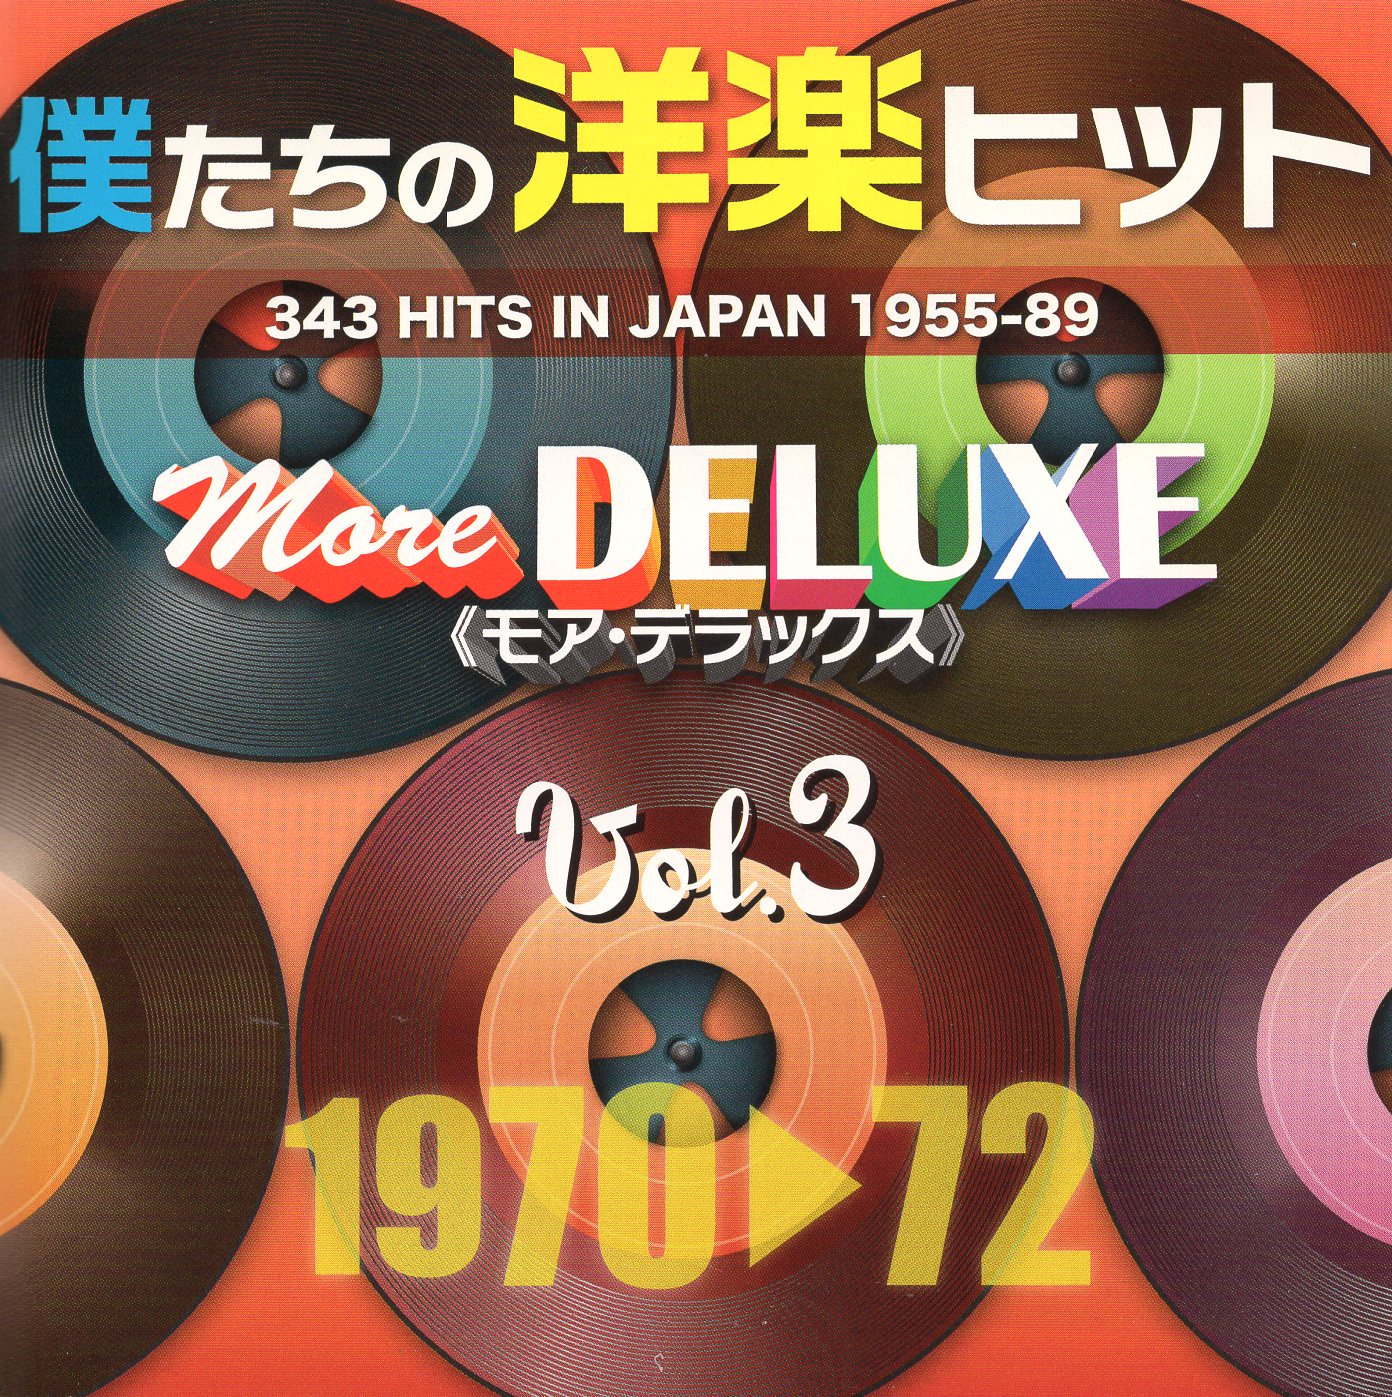 """僕たちの洋楽ヒット More Delux Vol.3 1977-79 343 Hits In Japan 1955-89"""